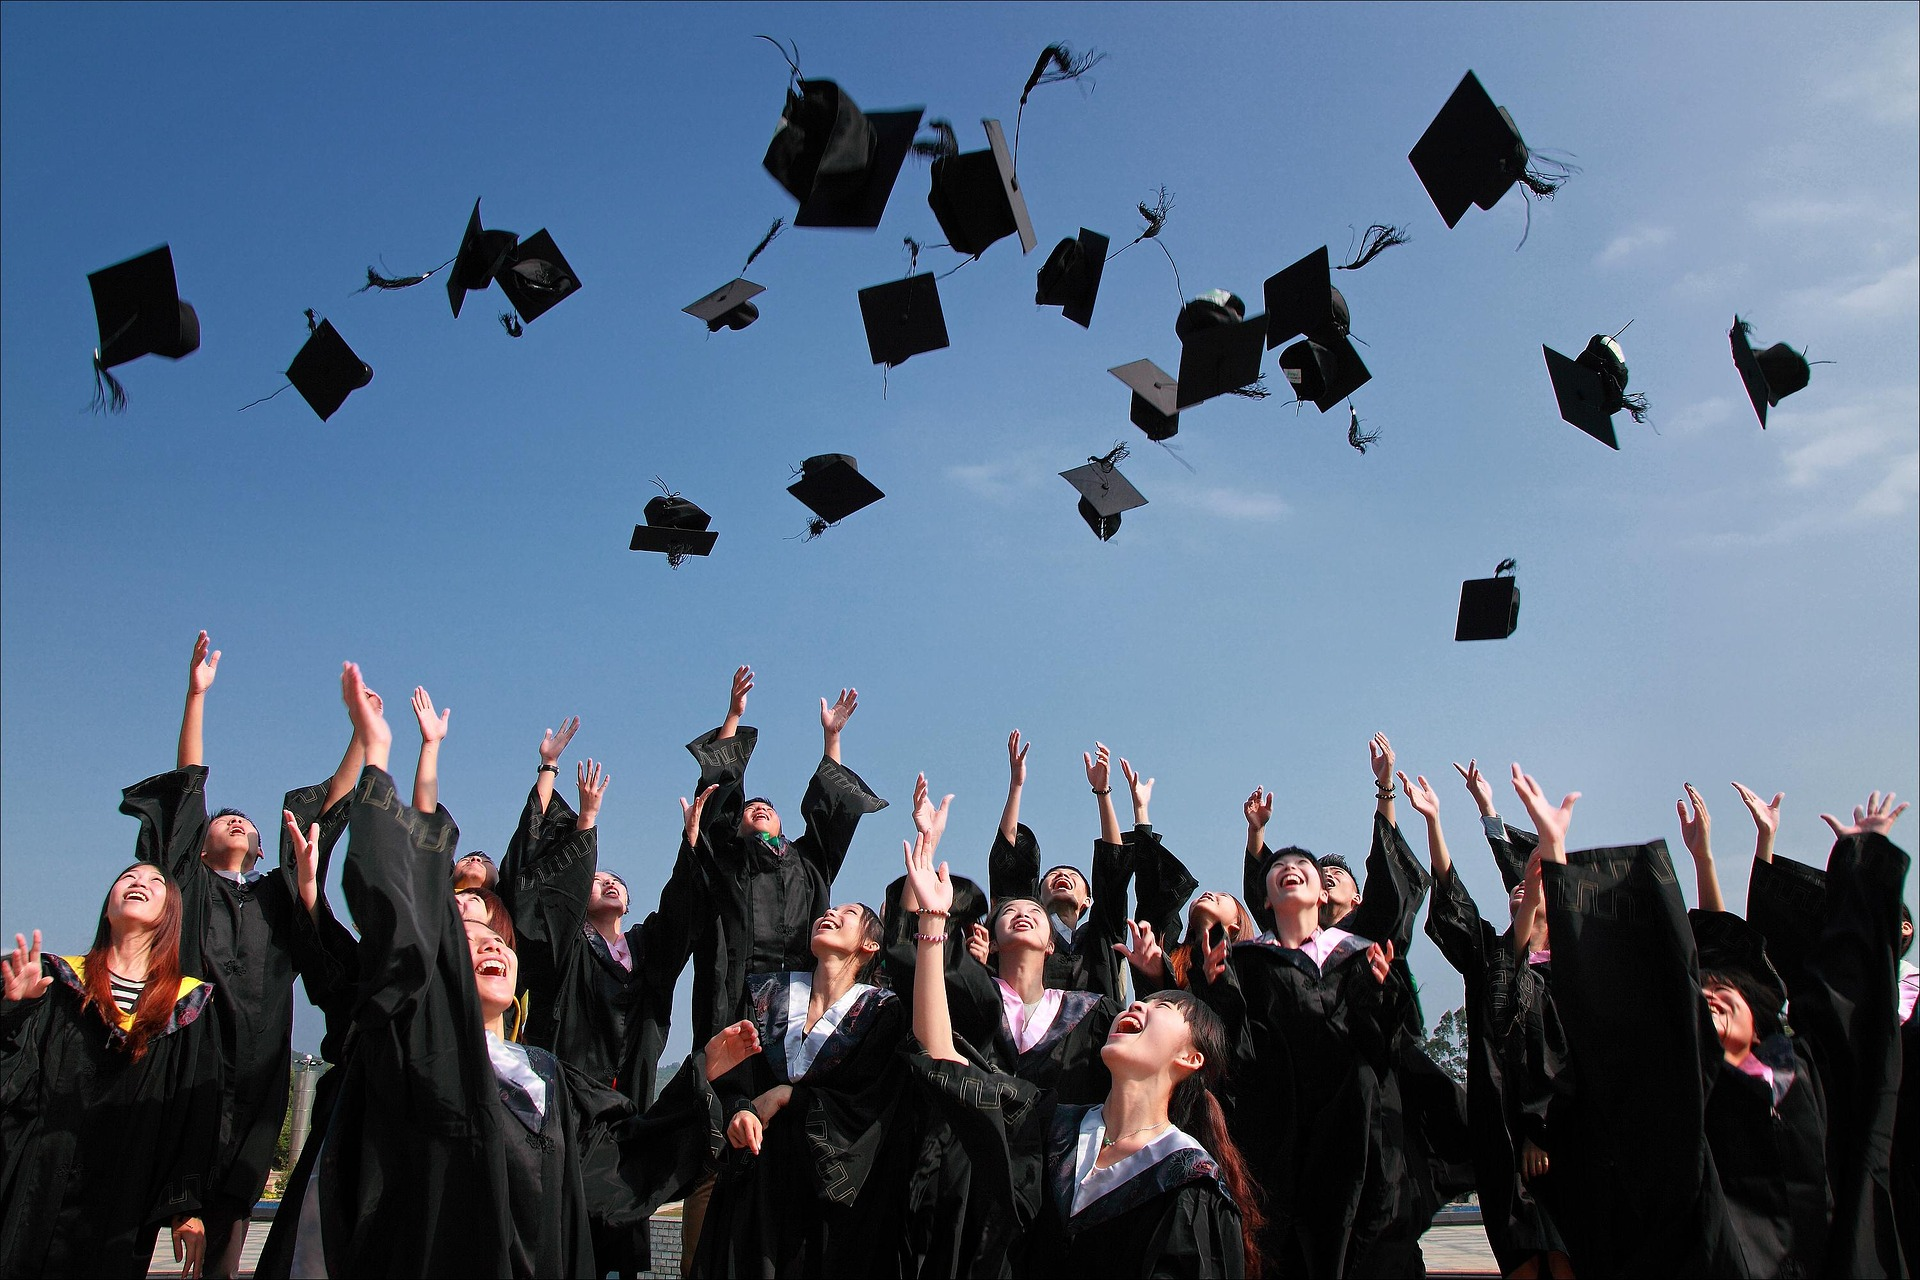 TOP 4 TIPS FOR GRADUATES LOOKING FOR A LOCAL JOB Star Employment Services